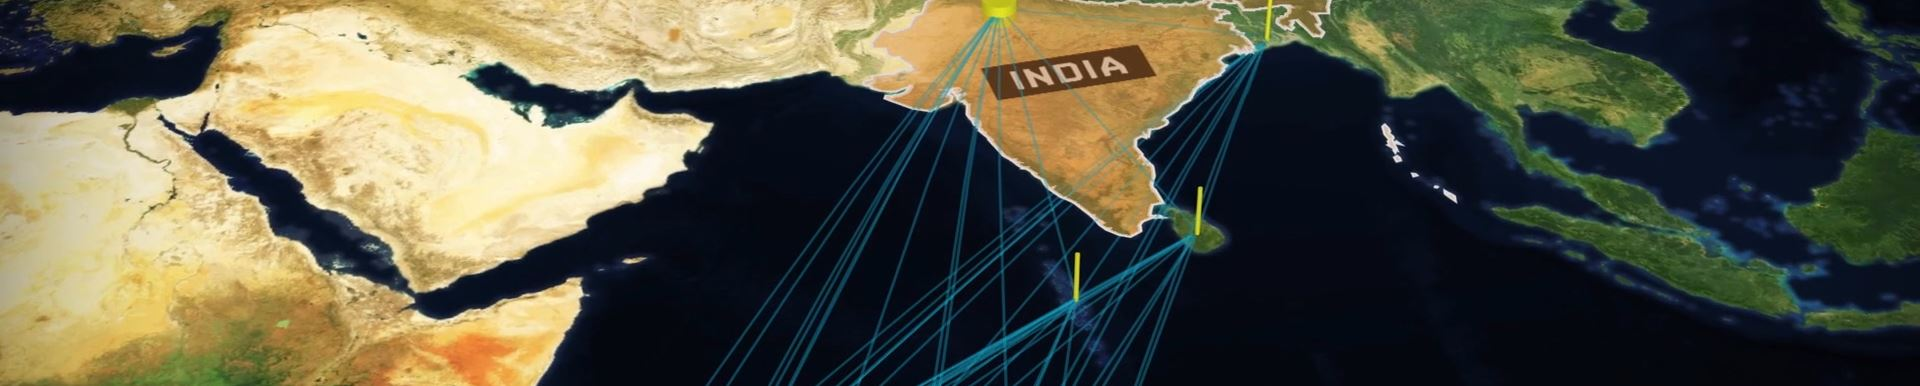 Ports and Partnerships: Delhi Invests in Indian Ocean Leadership | Asia Maritime Transparency Initiative